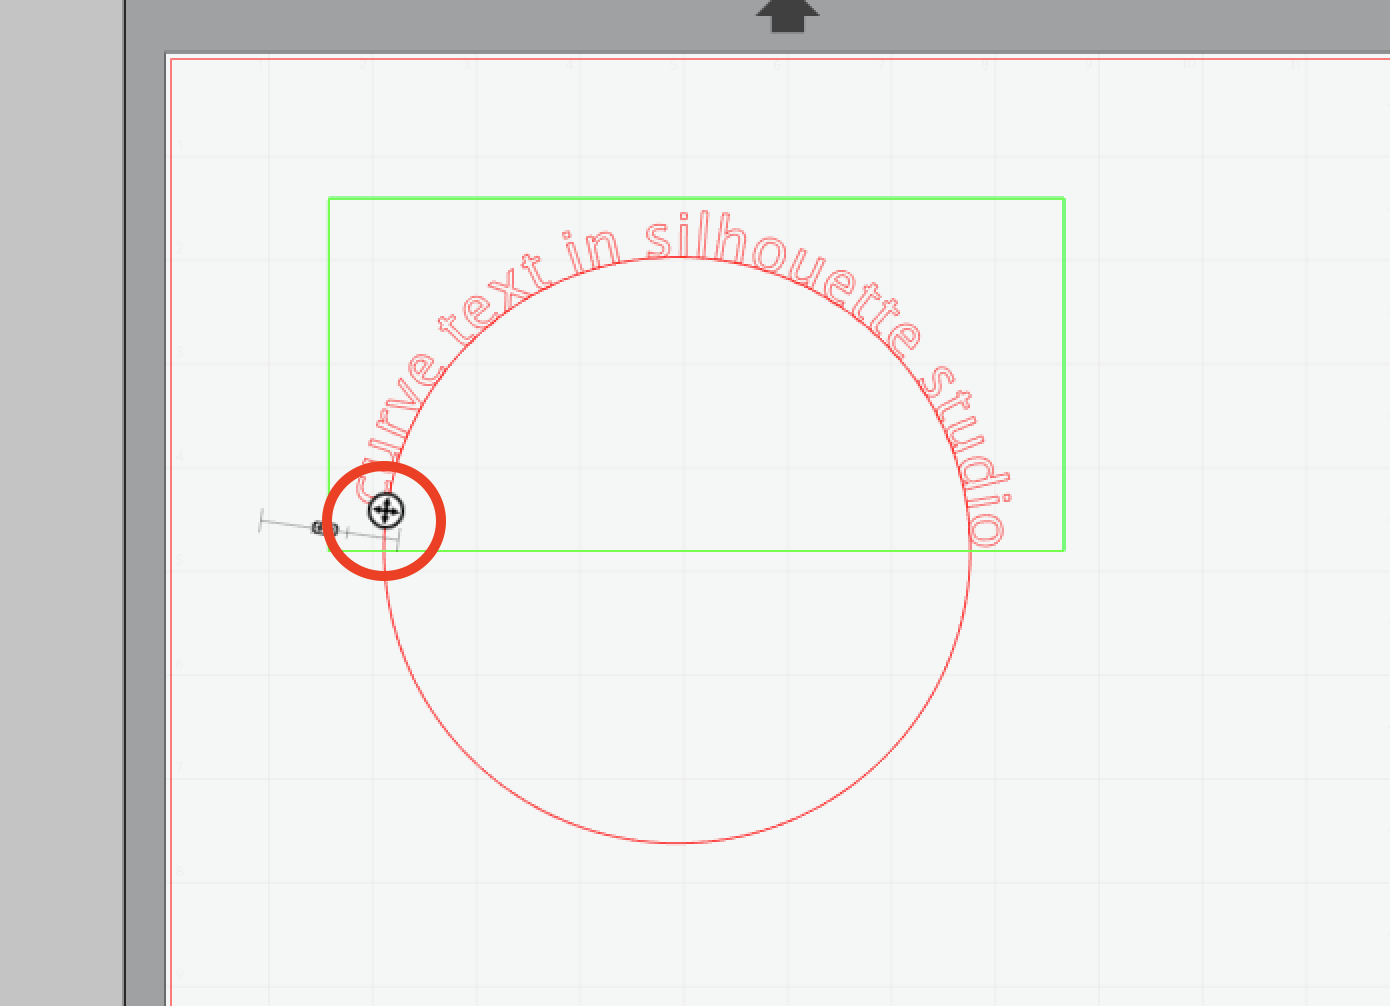 How to Make Text Curve in Silhouette Studio V4 {3 Step